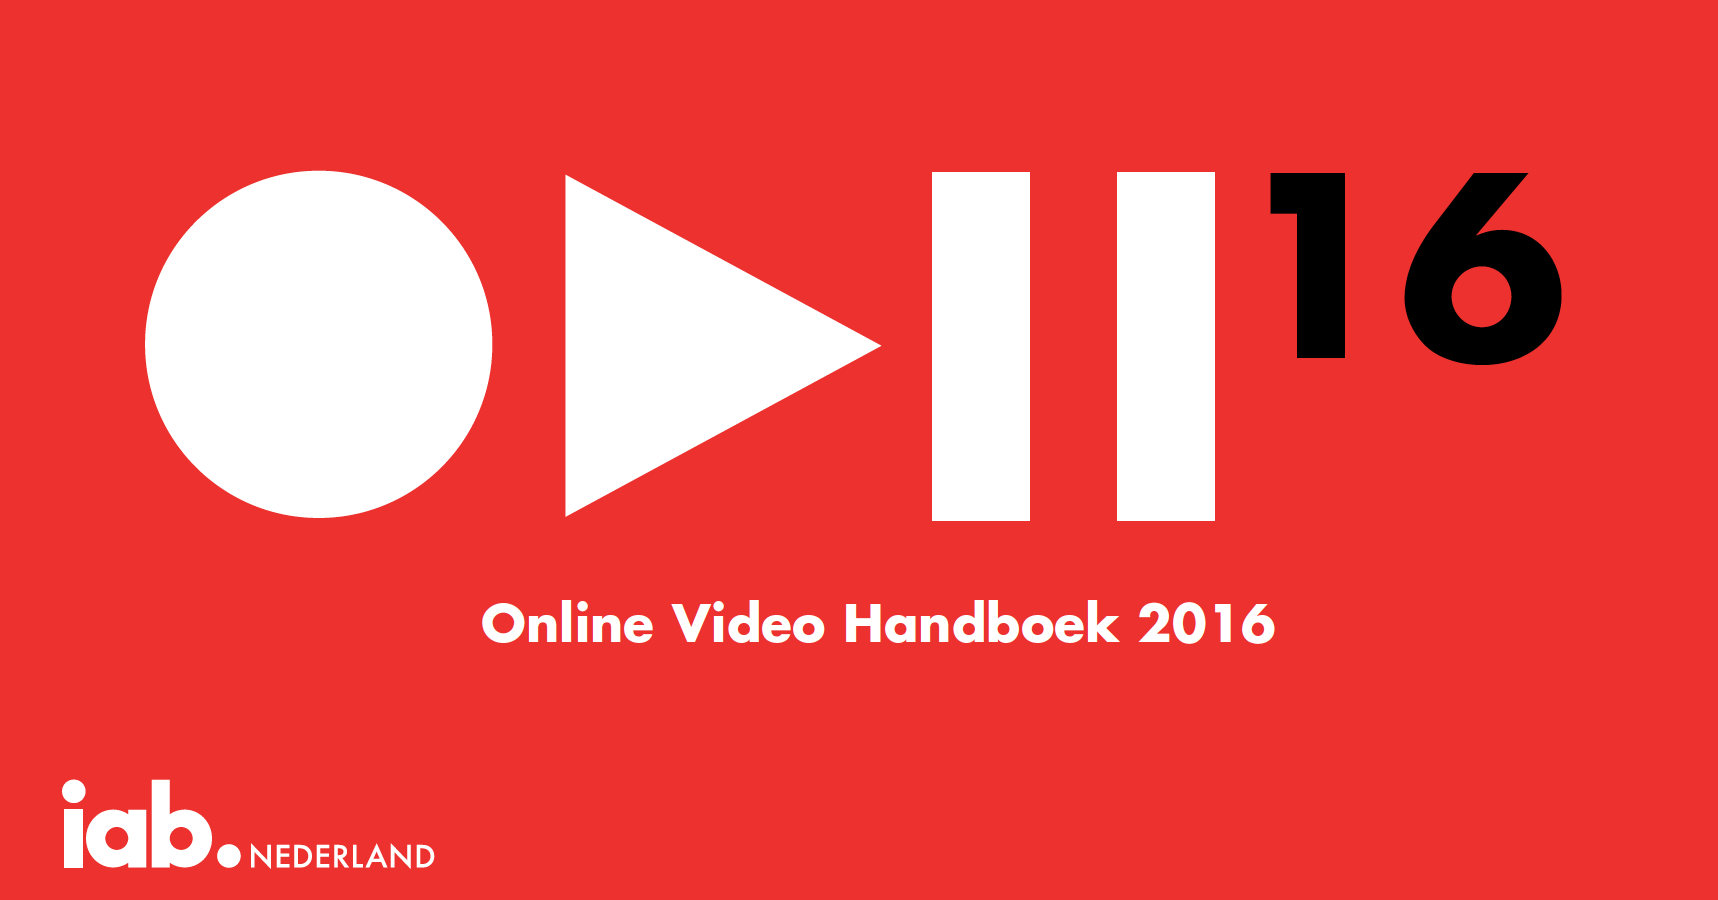 Header image for Online Video Handbook 2016